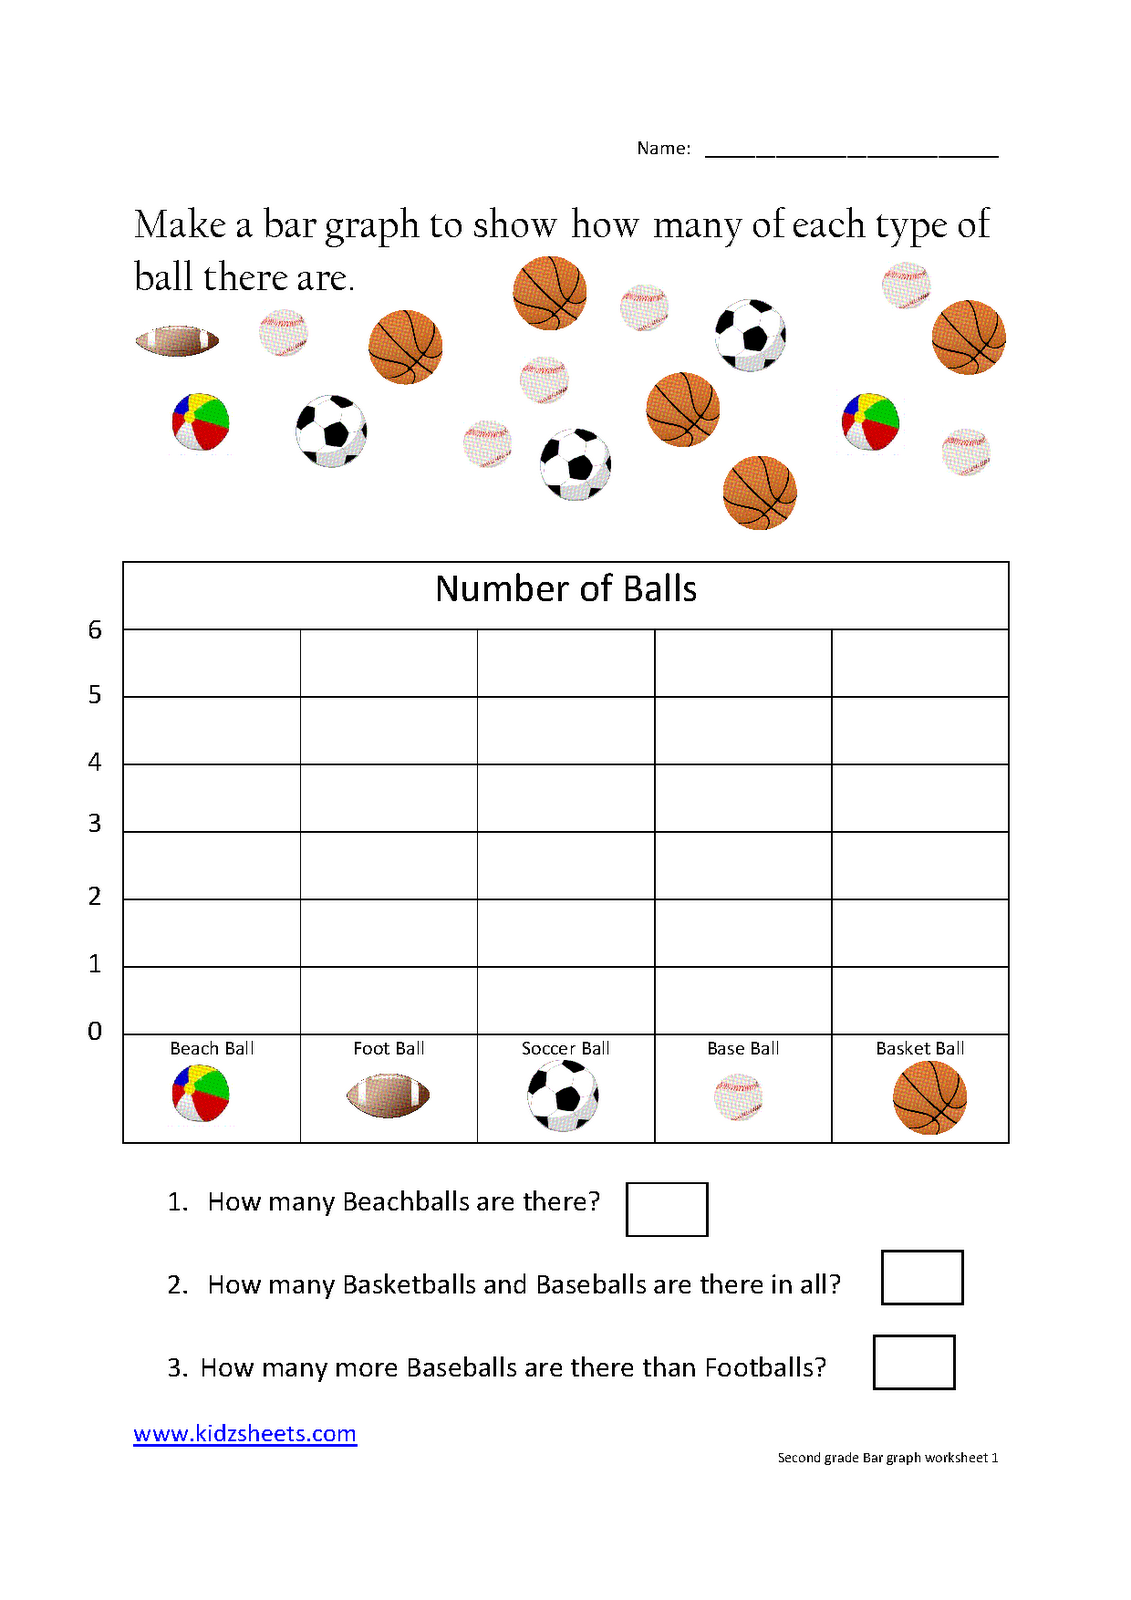 Printables Bar Graph Worksheets 2nd Grade kidz worksheets second grade bar graph worksheet1 graph